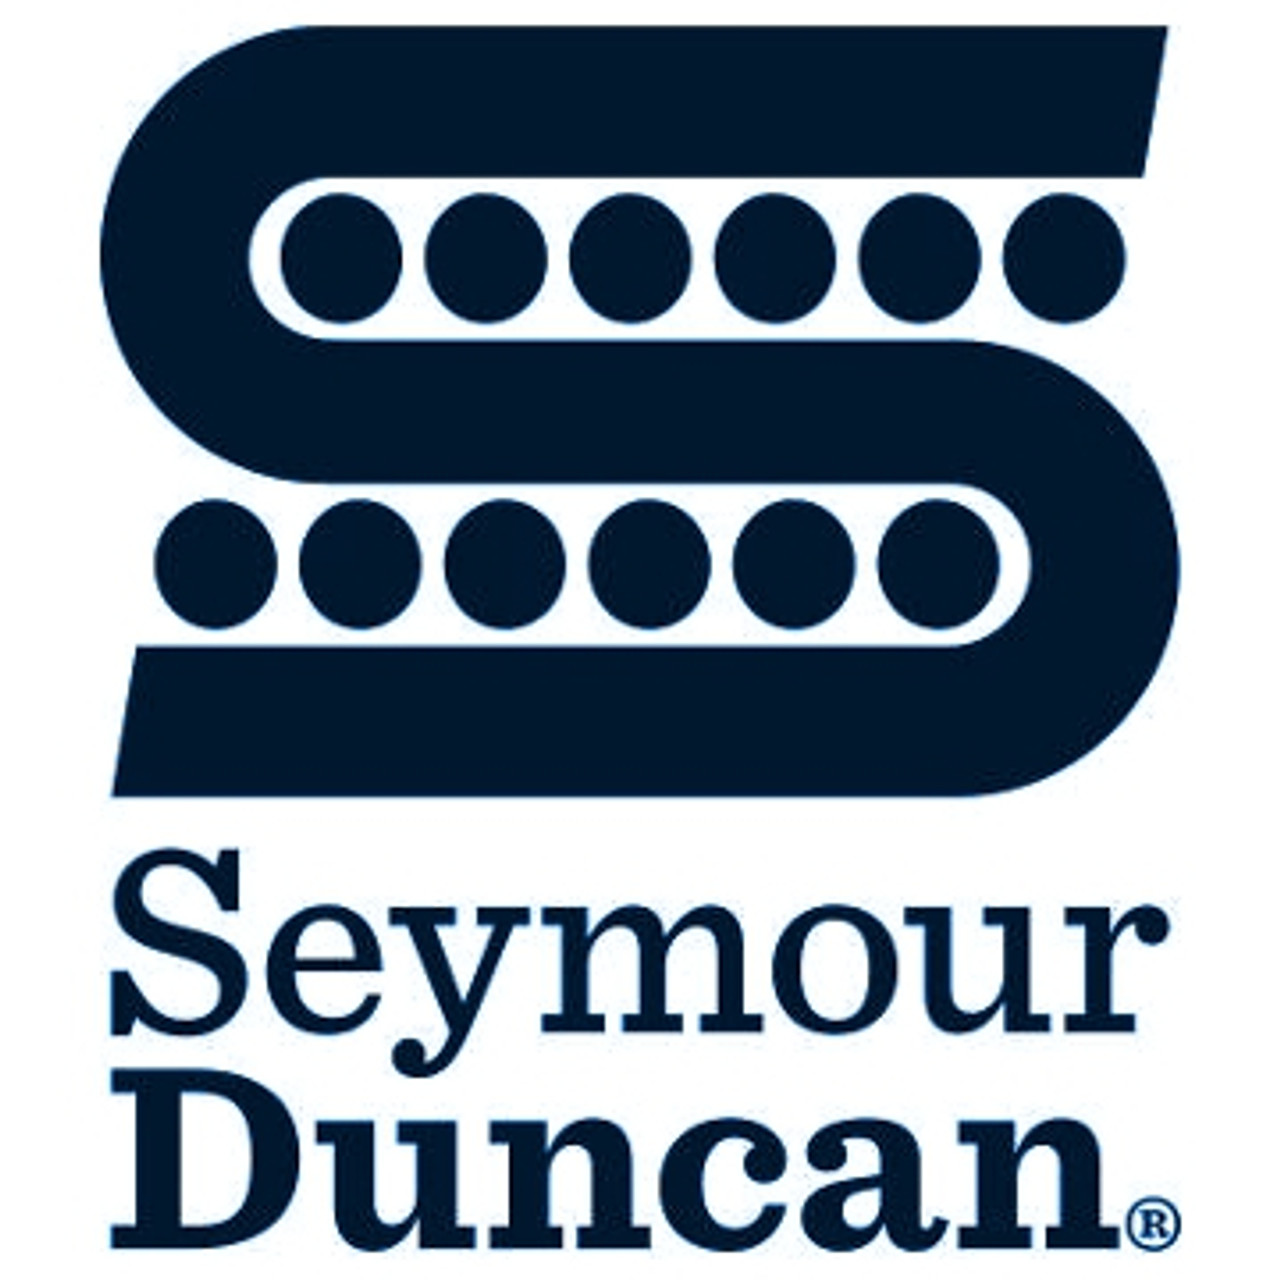 Seymour Duncan Alnico II Pro Neck Position Humbucker-Black